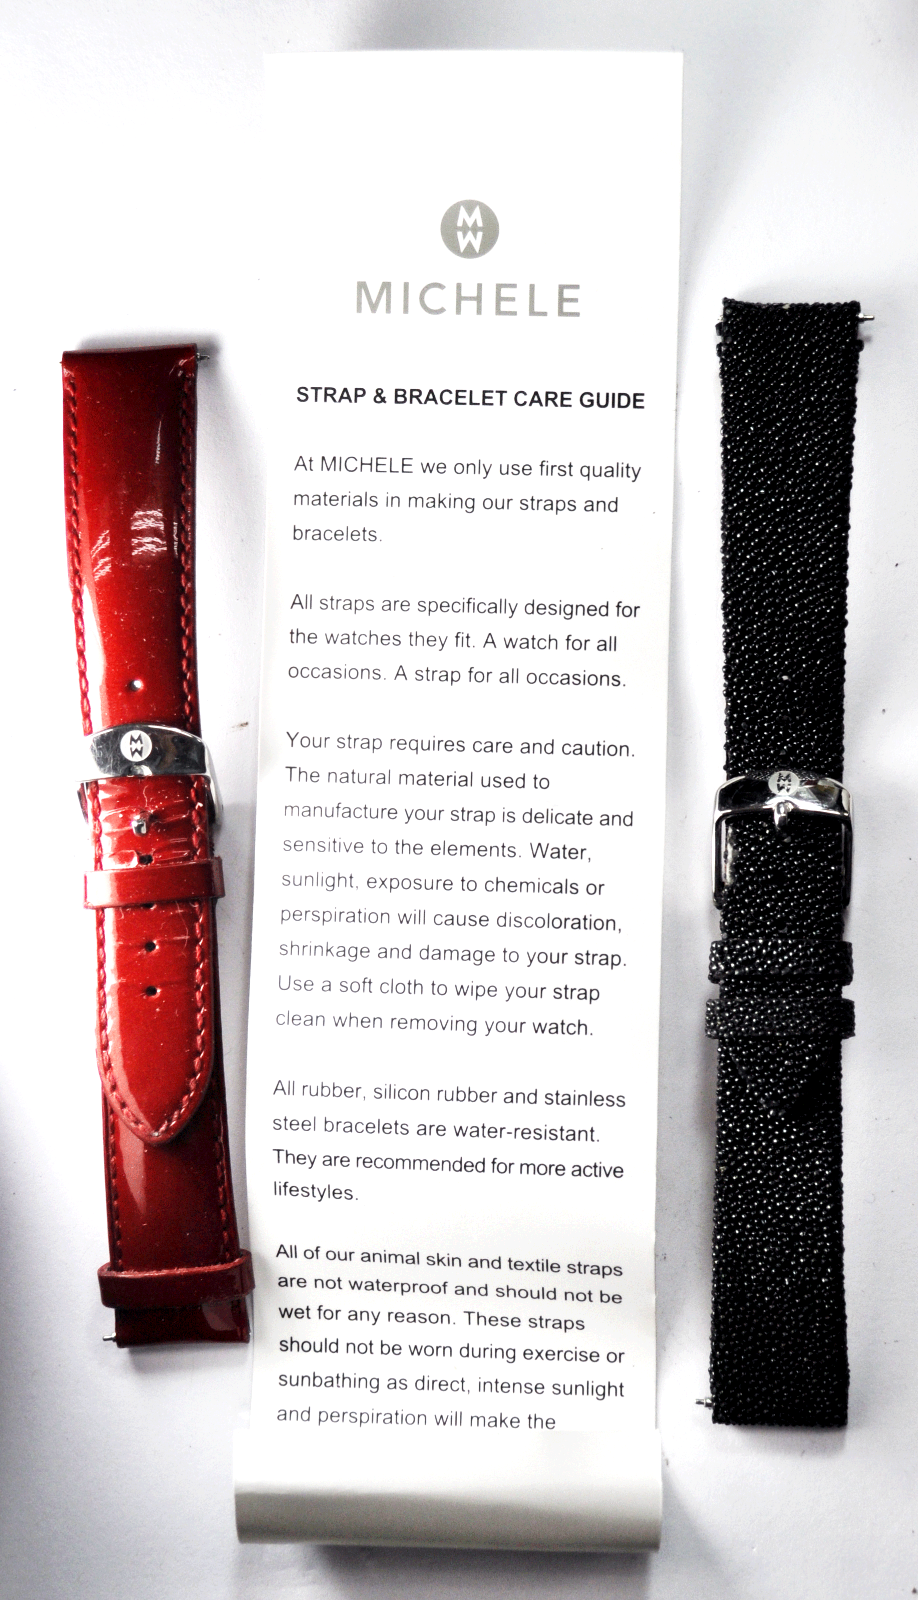 Set of 2 Michele Leather Watch Straps Red & Black Quick Change 18mm - $29.69